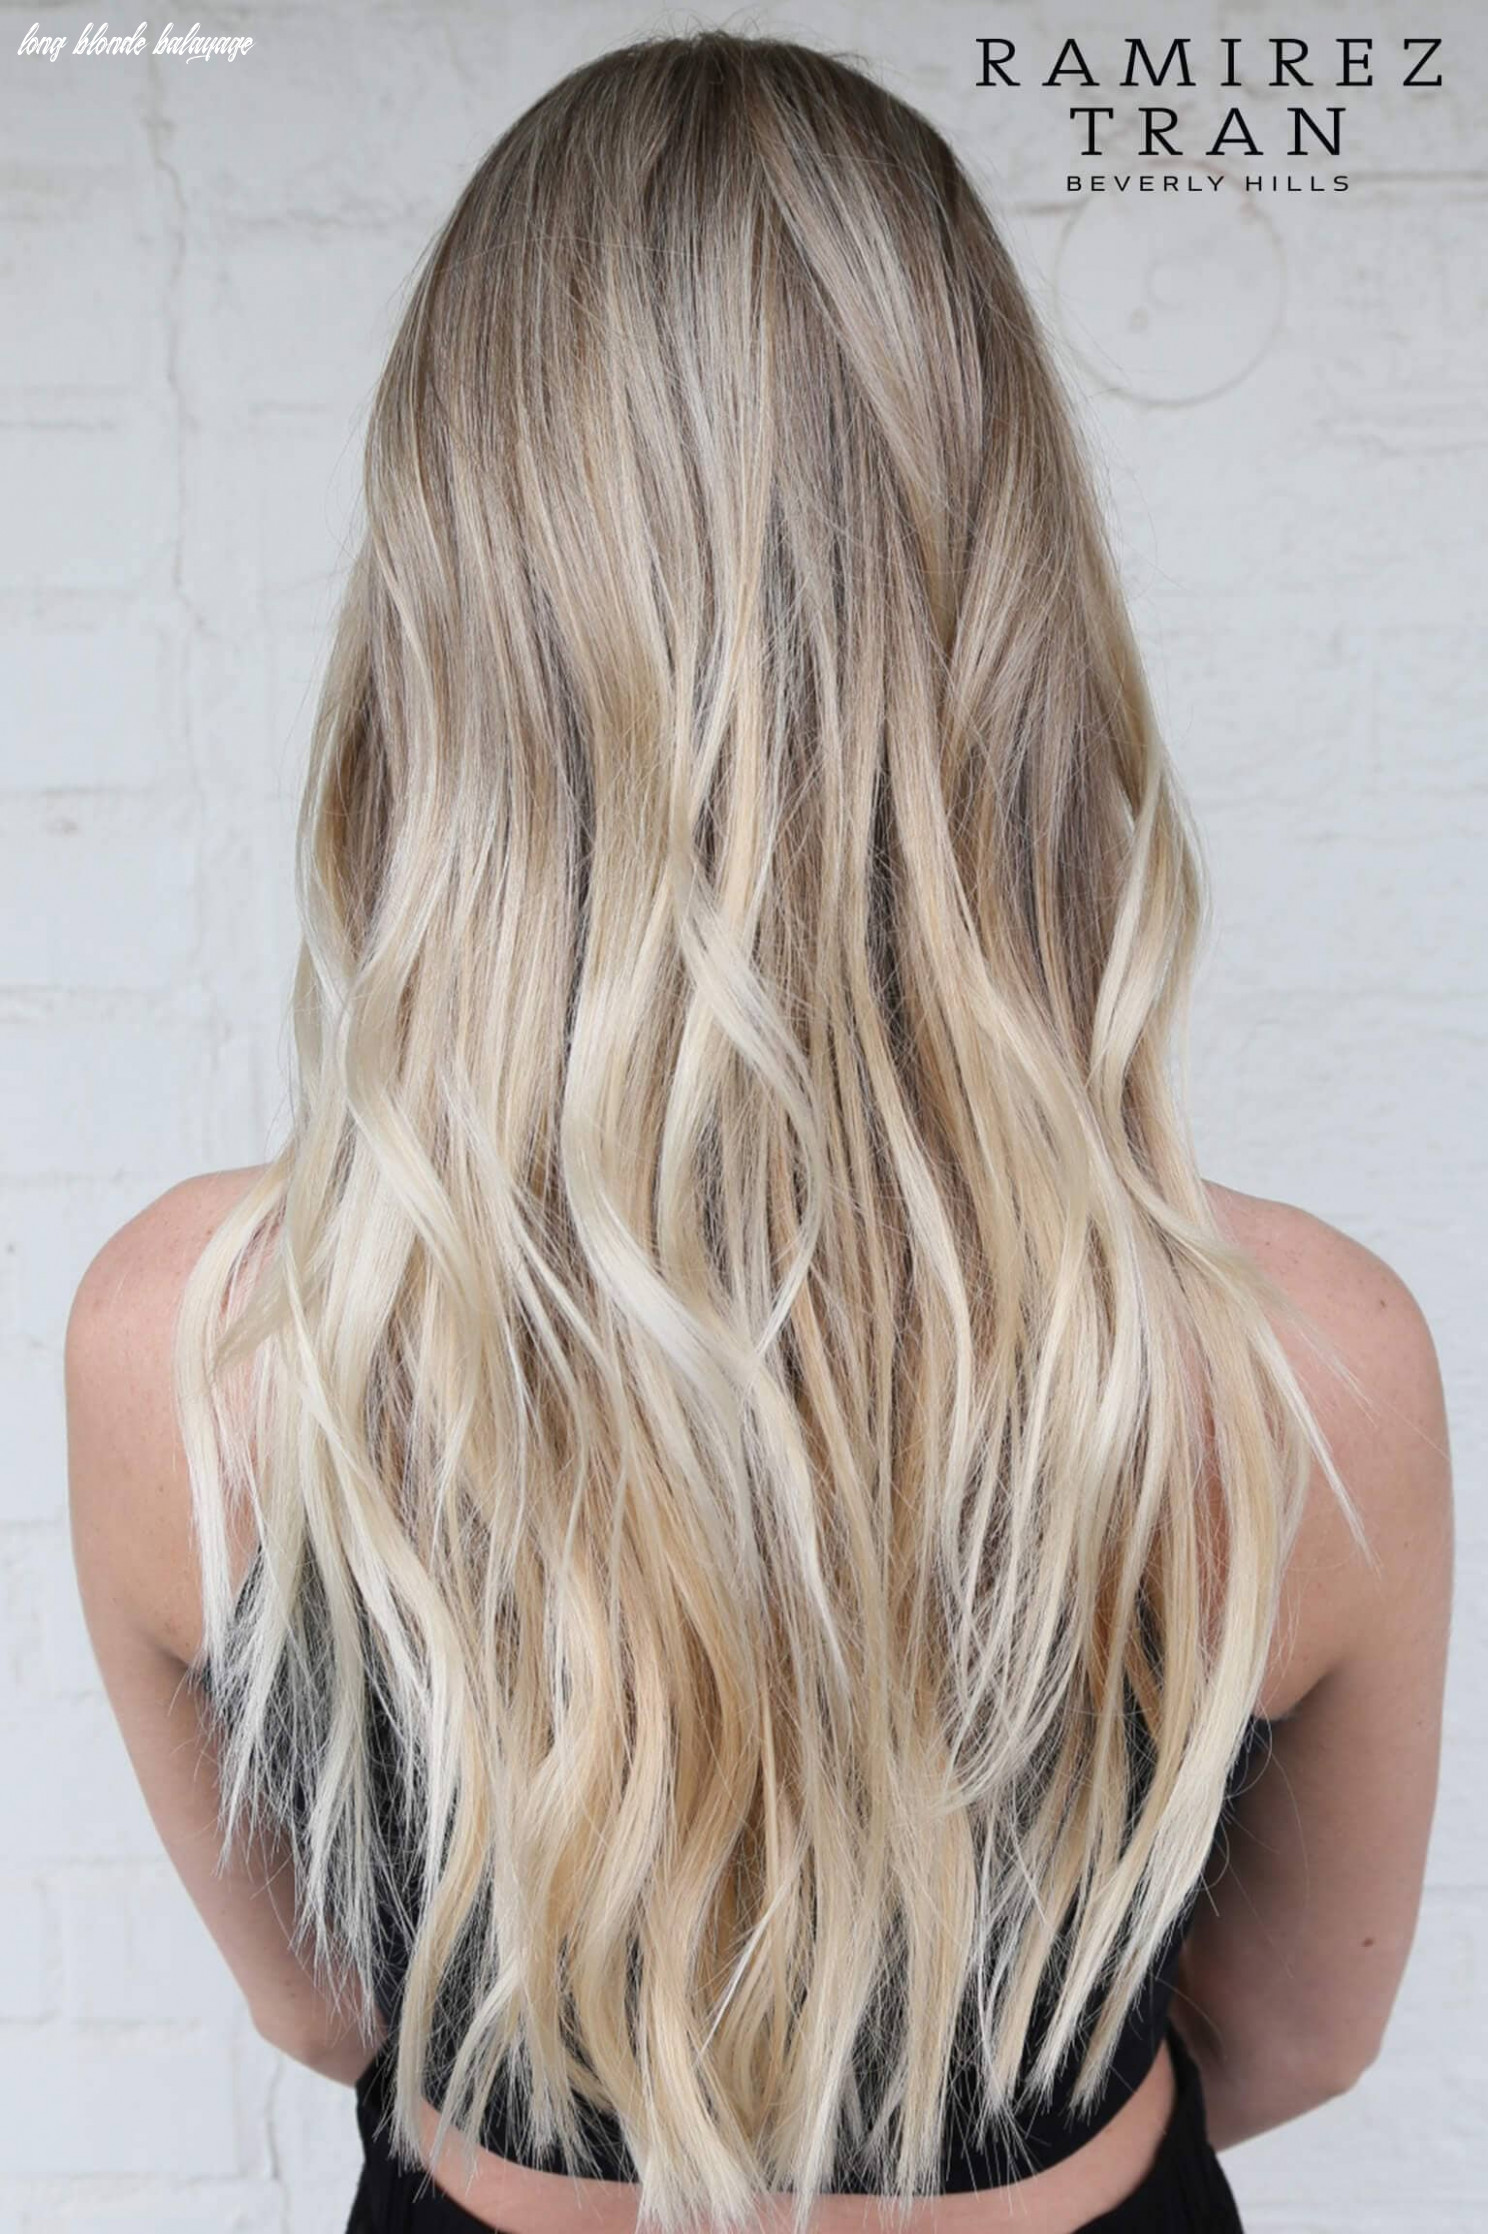 8 Bombshell Blonde Balayage Hairstyles that are Cute and Easy for ...